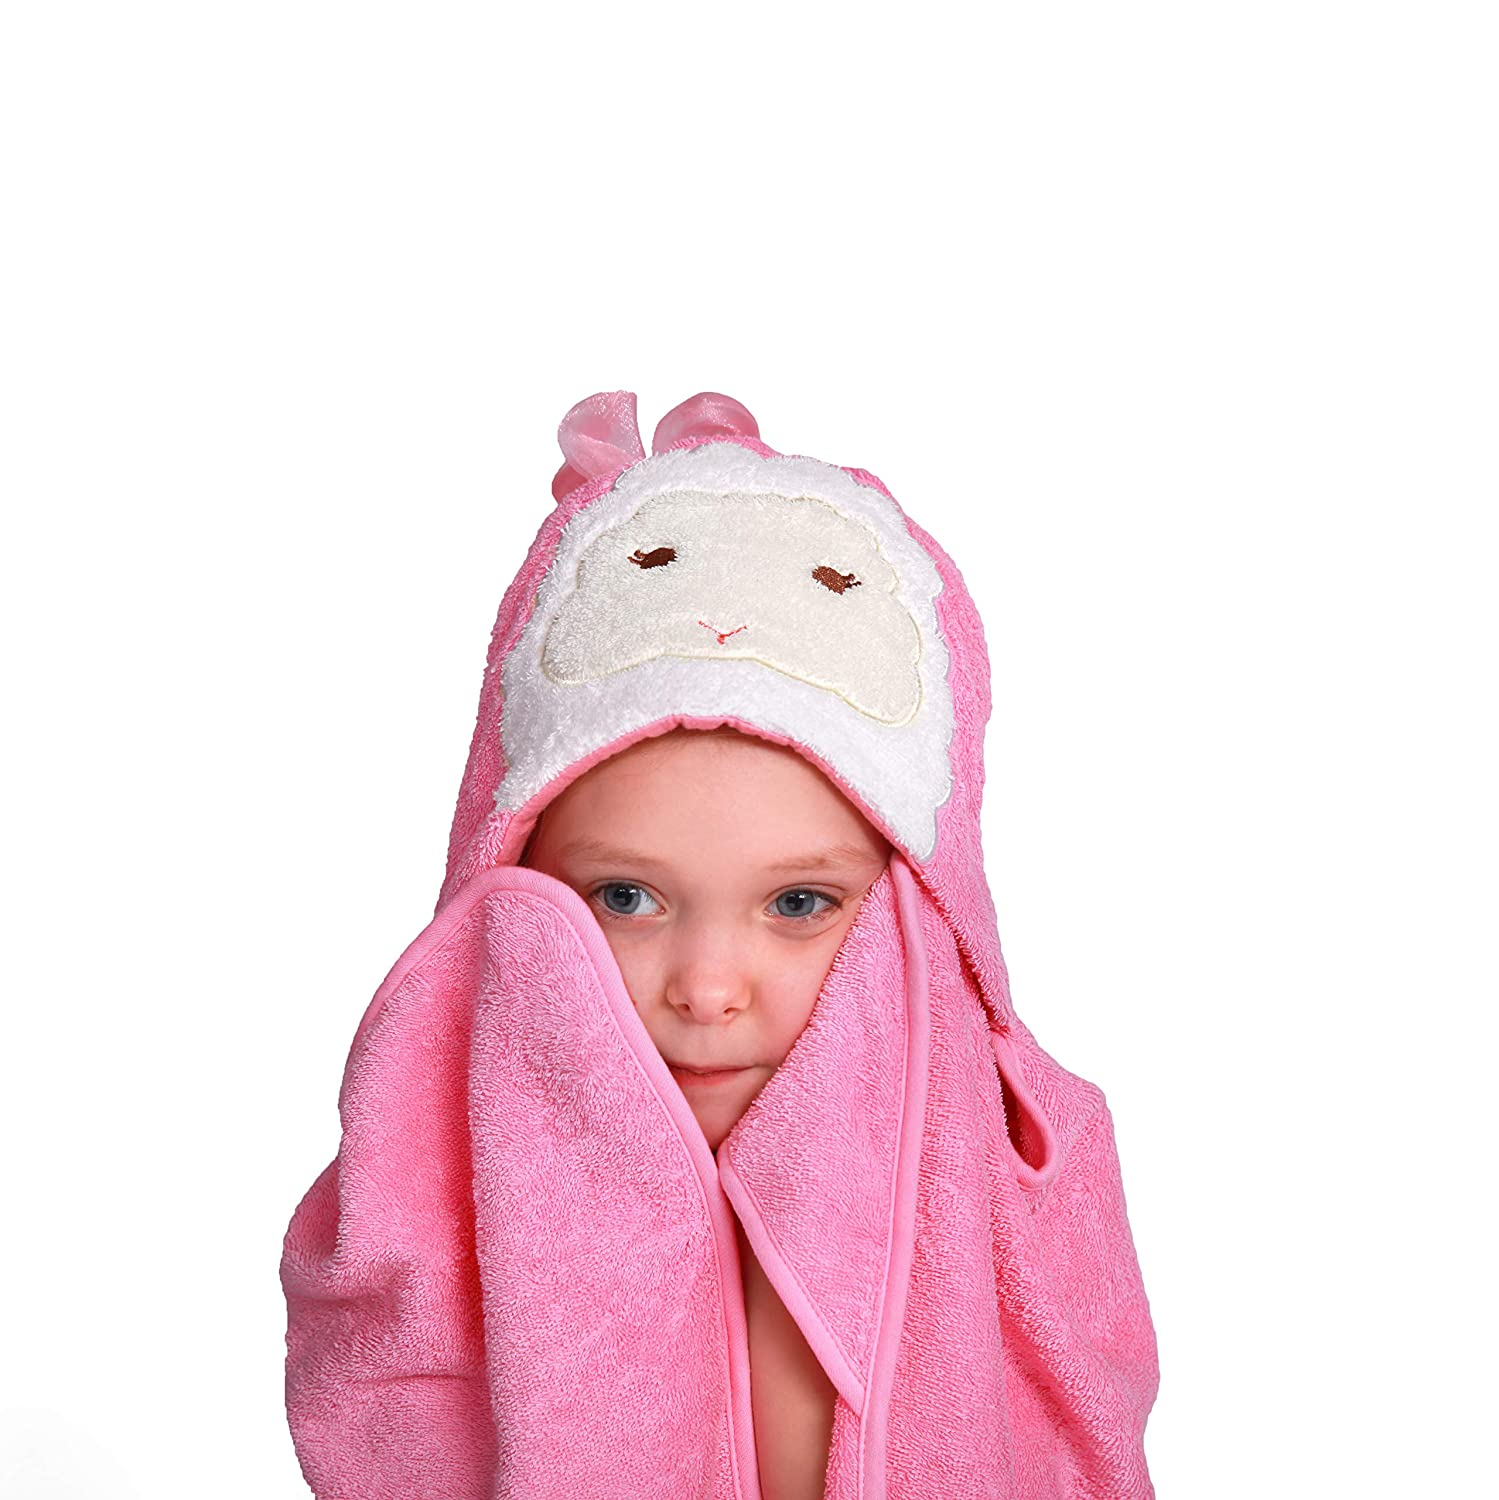 Kids Hooded Towel,Organic Cotton Strong Absorbent Wraps for Bath,Beach,Pool Time,Best Toddler Shower Towels,76x92cm